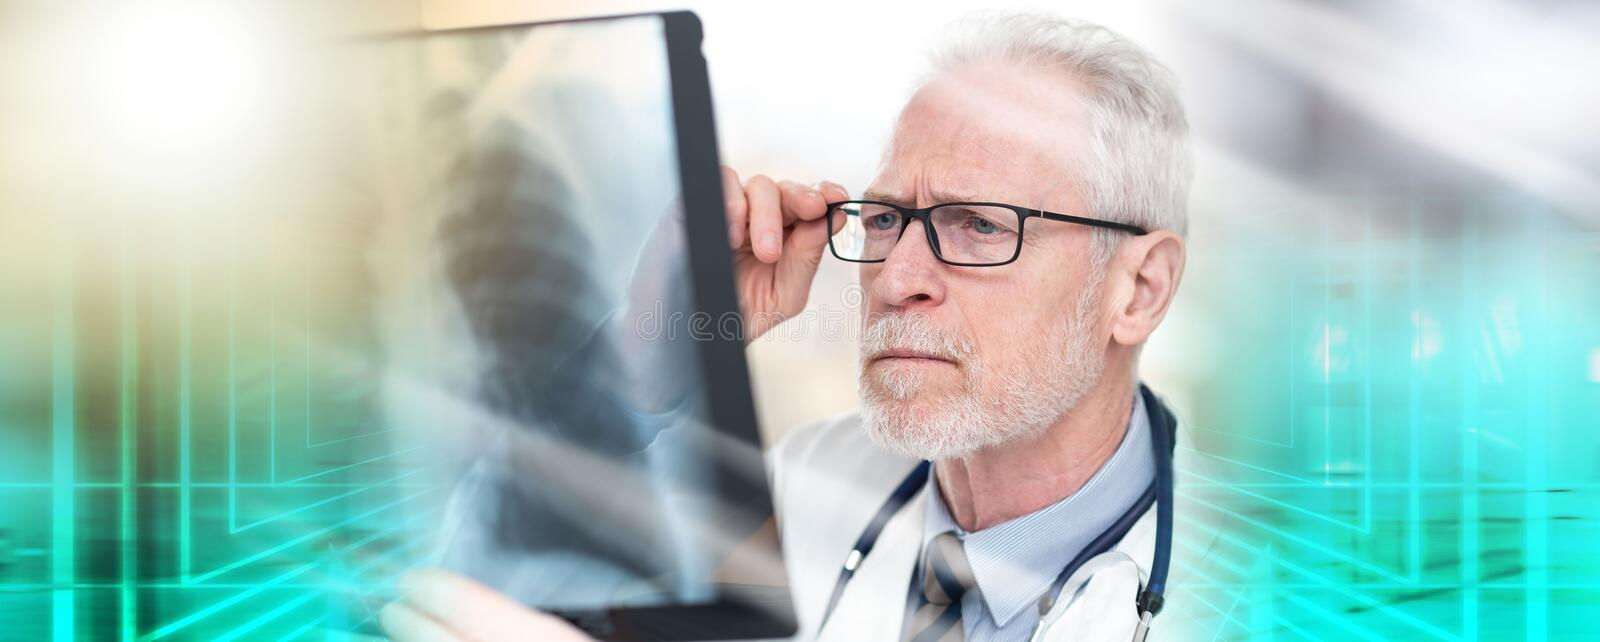 Senior doctor looking at x-ray; multiple exposure. Senior doctor looking at x-ray in clinic; multiple exposure stock images